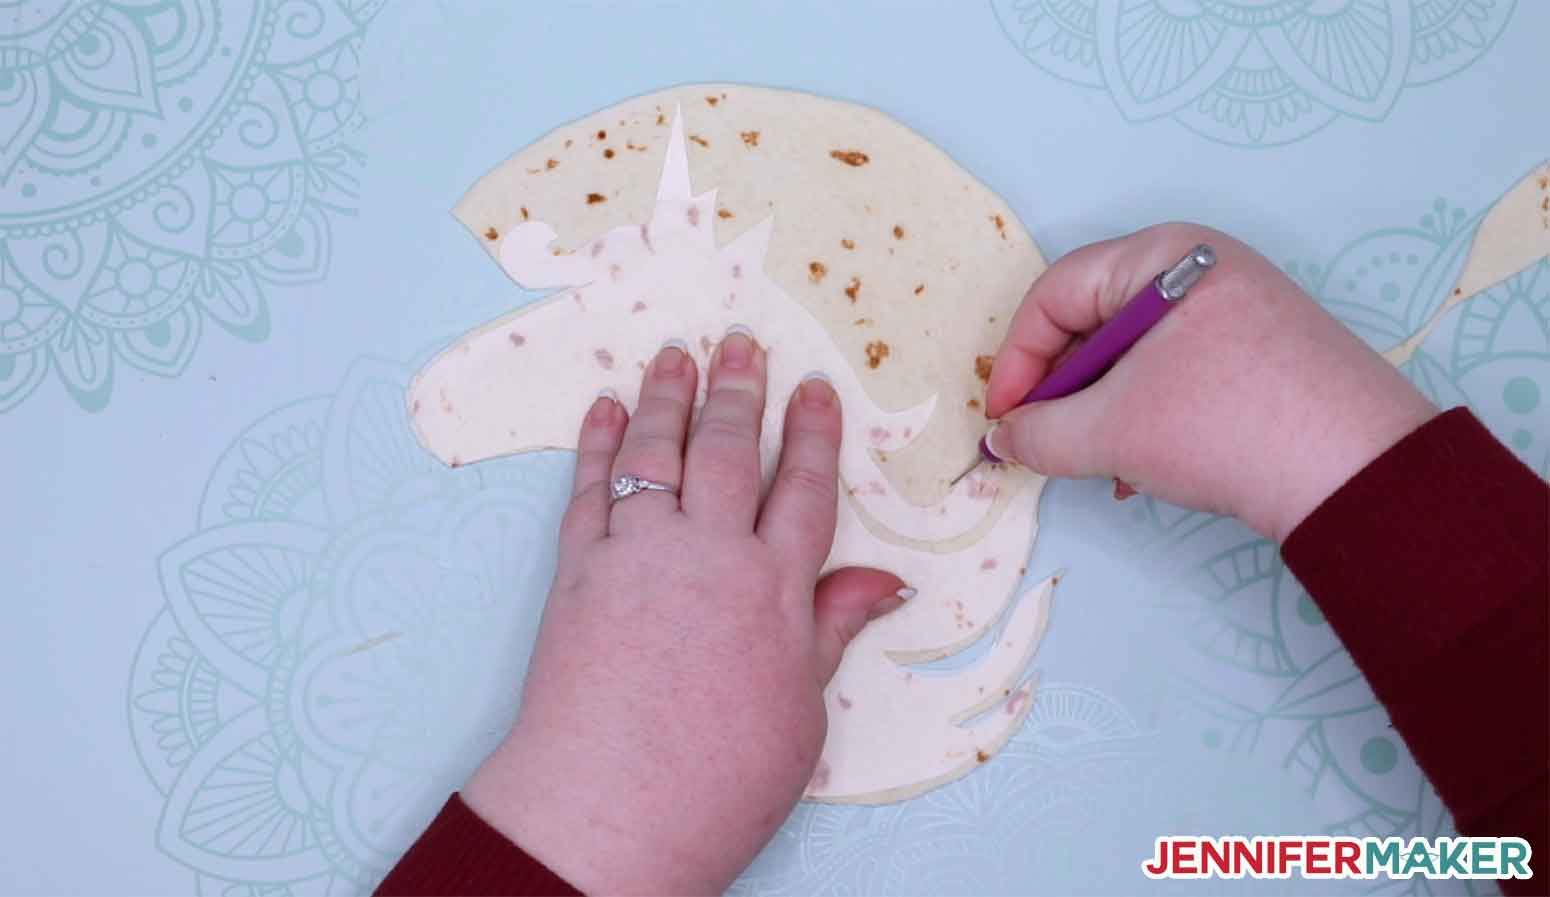 Cutting the tortilla with a knife using the Cricut stencil cut from plastic